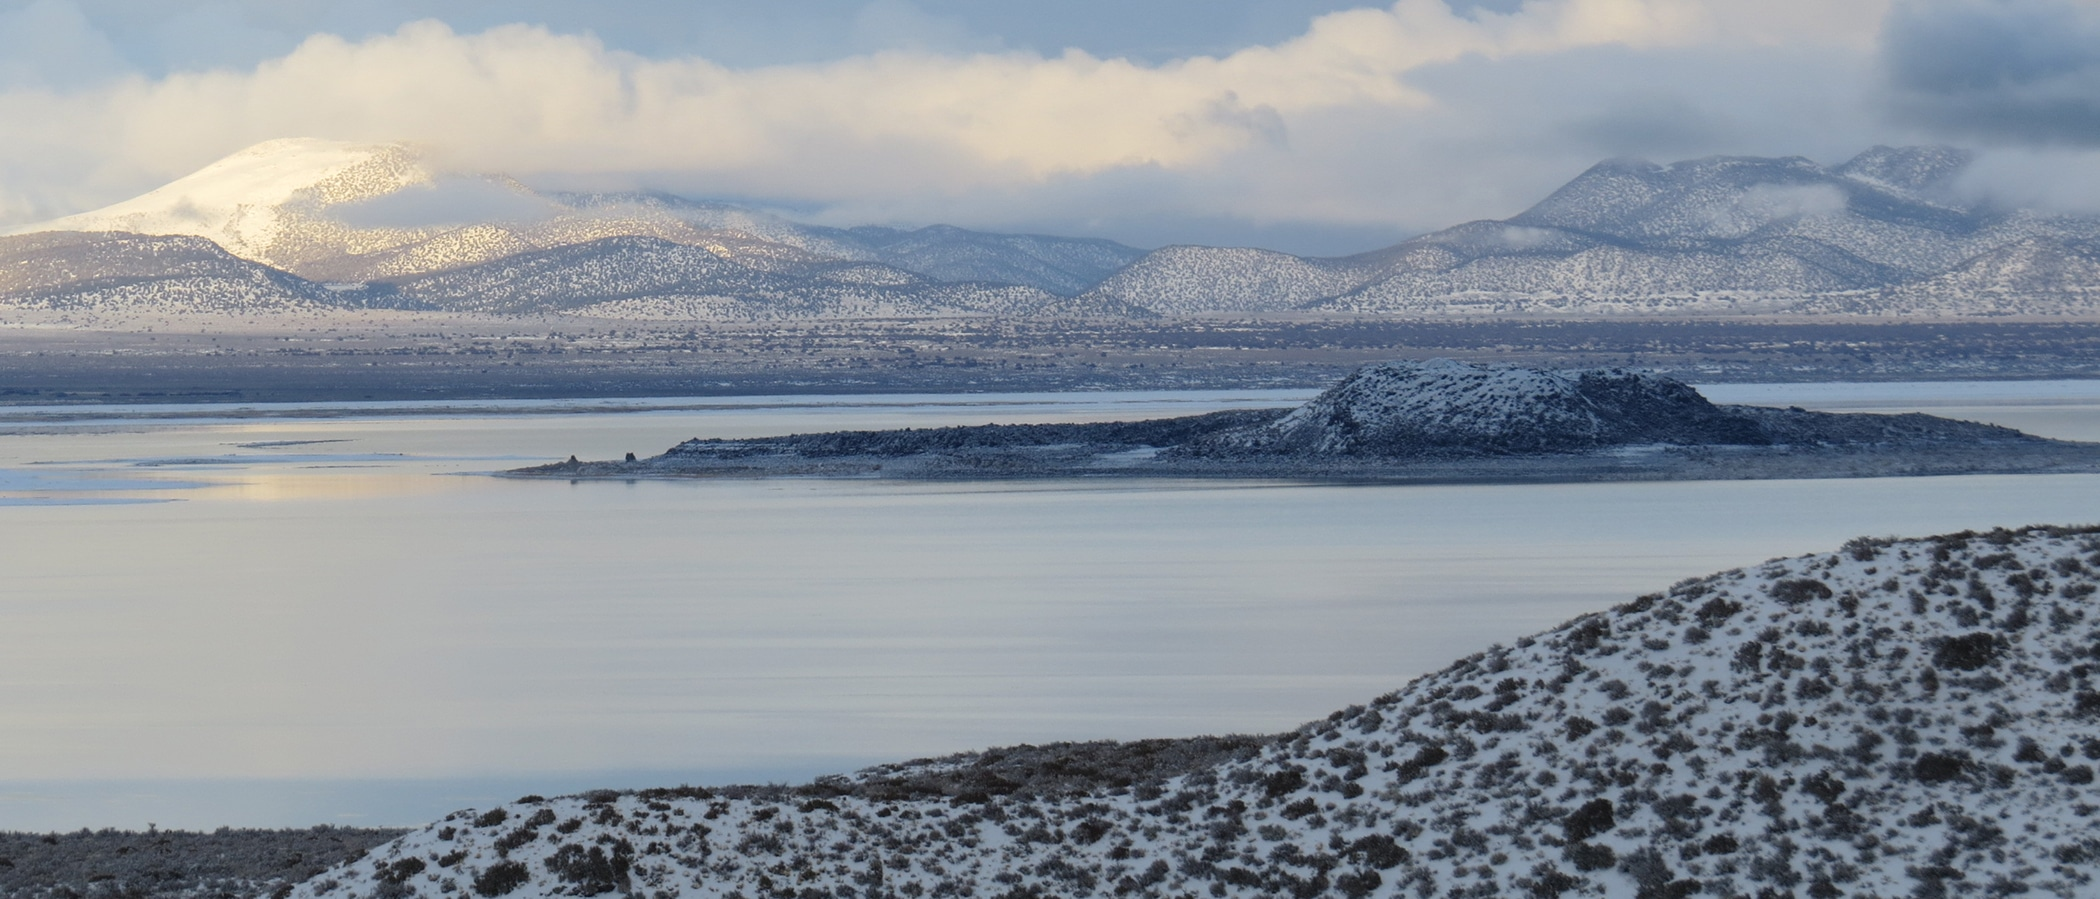 An island in Mono Lake is covered in snow, and so are the hilly mountains behind it. The sky is cloudy with yellow sunlight shining through onto the glassy light blue surface of the water.